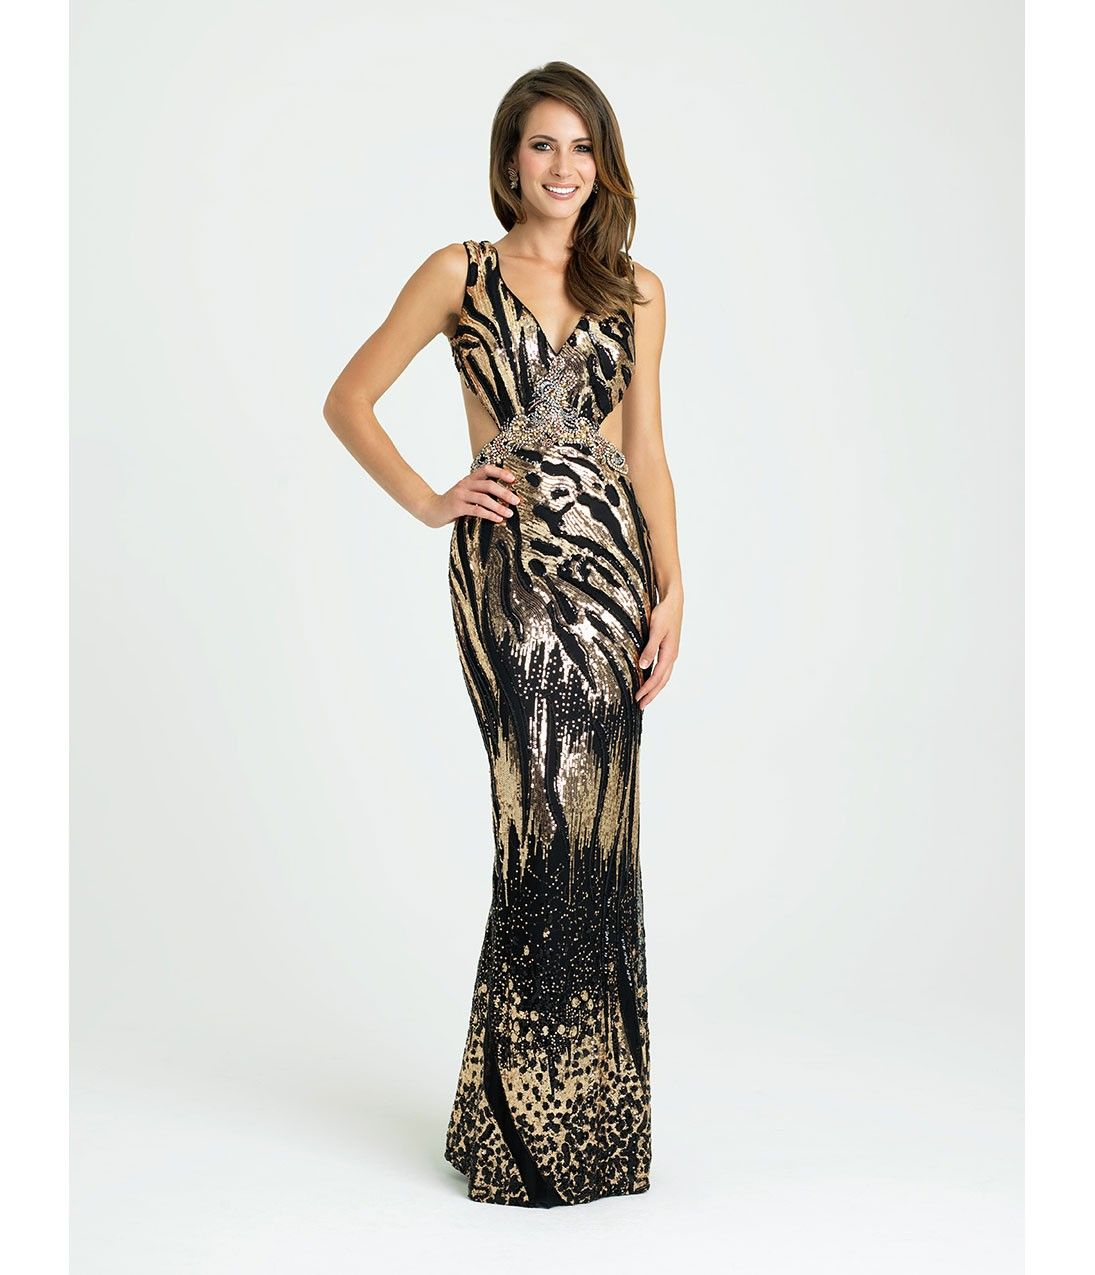 Black & Gold Sequin Tiger Print Long Dress | Clothes | Pinterest ...